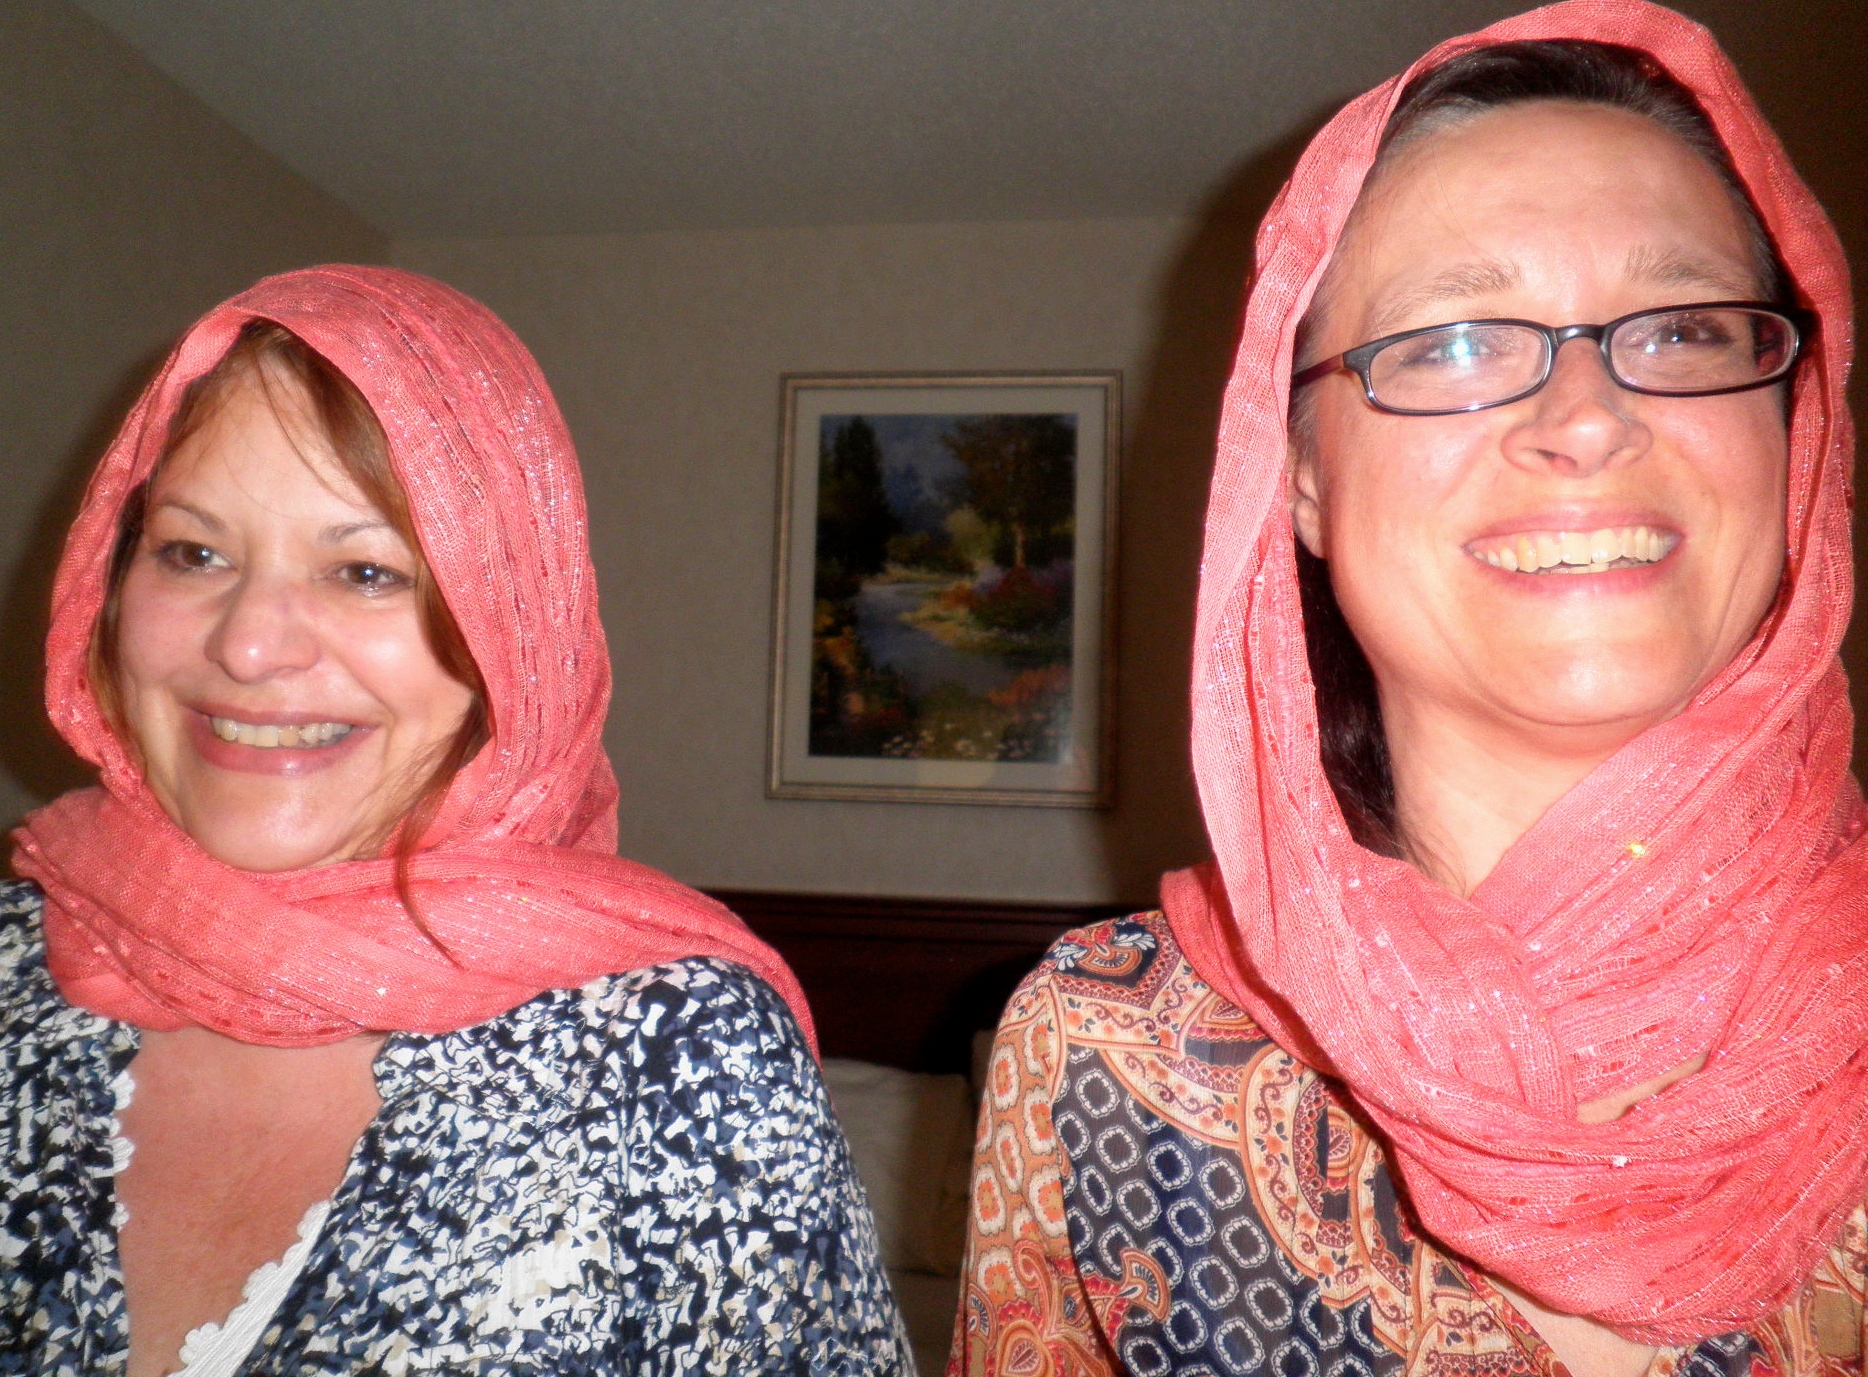 This is a picture of us, after a shopping trip where we bought the same scarf. Silly girls at heart!